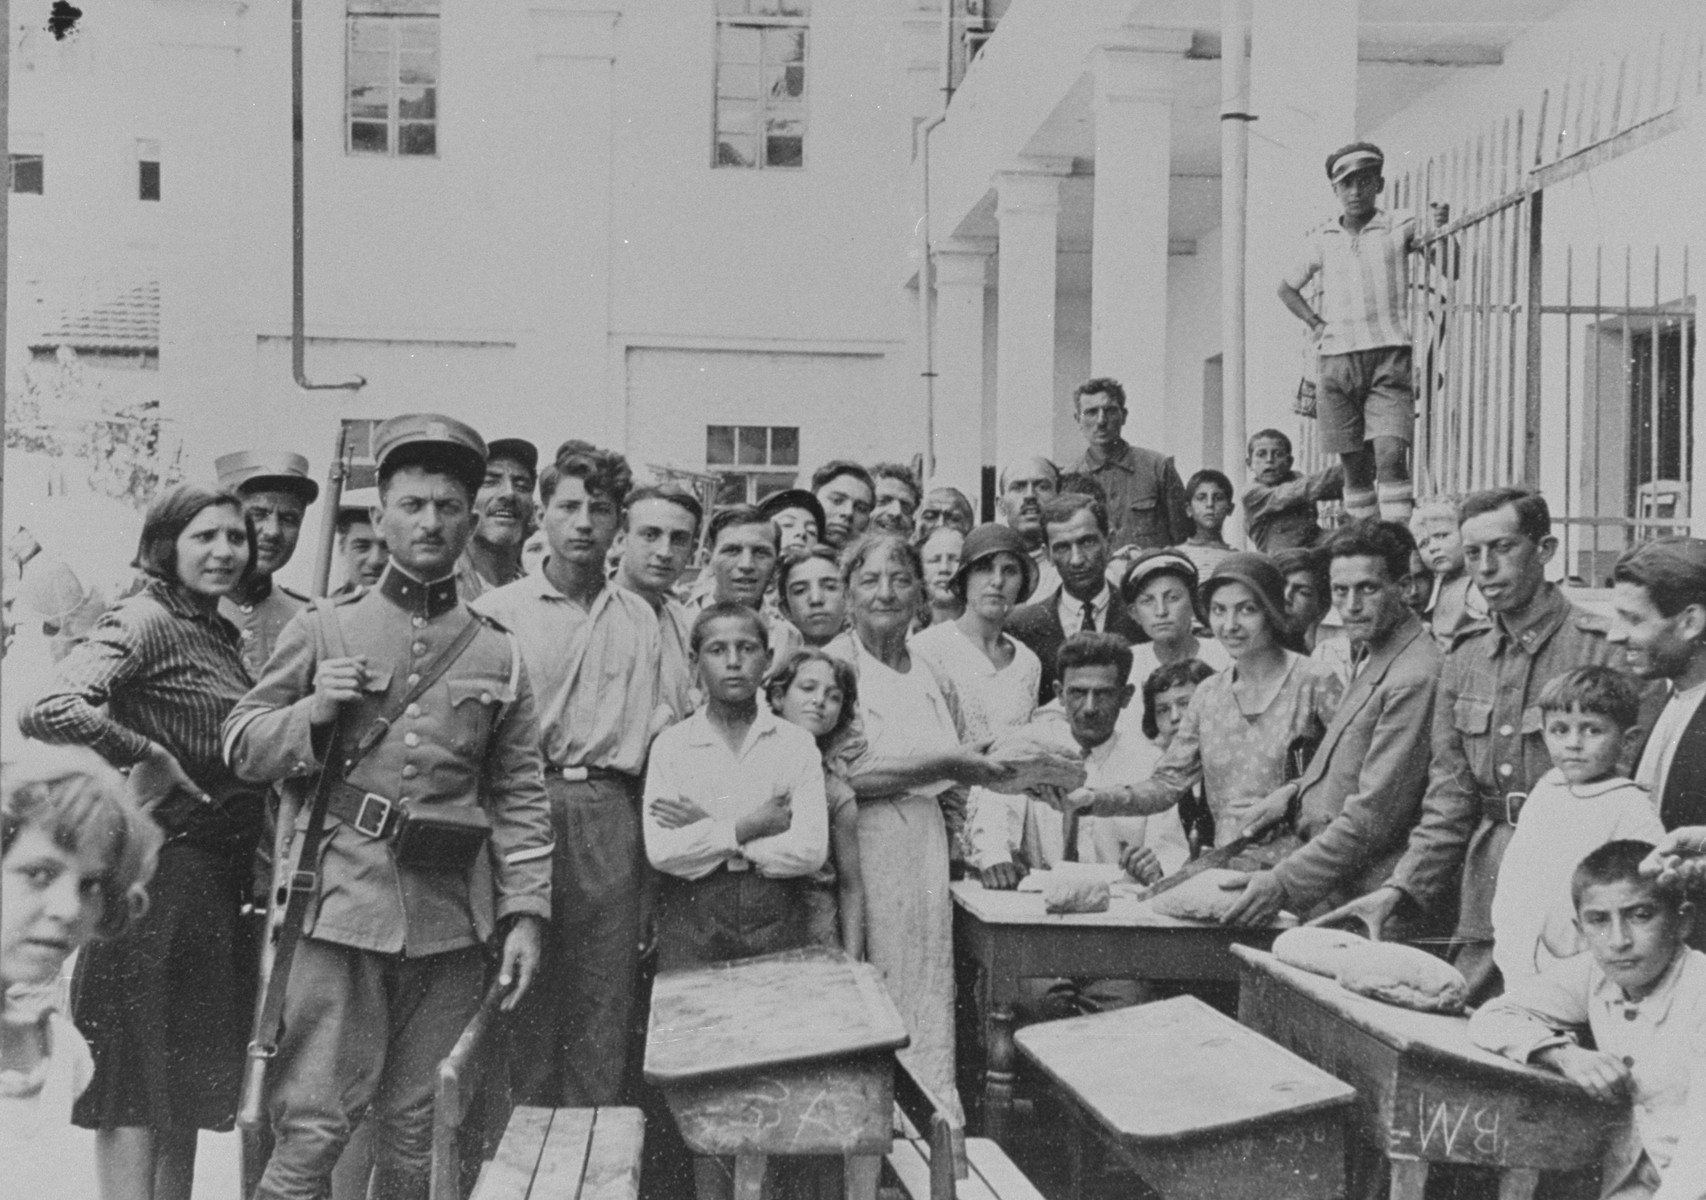 Jews take refuge in one of the local schools after a pogrom destroyed their community.